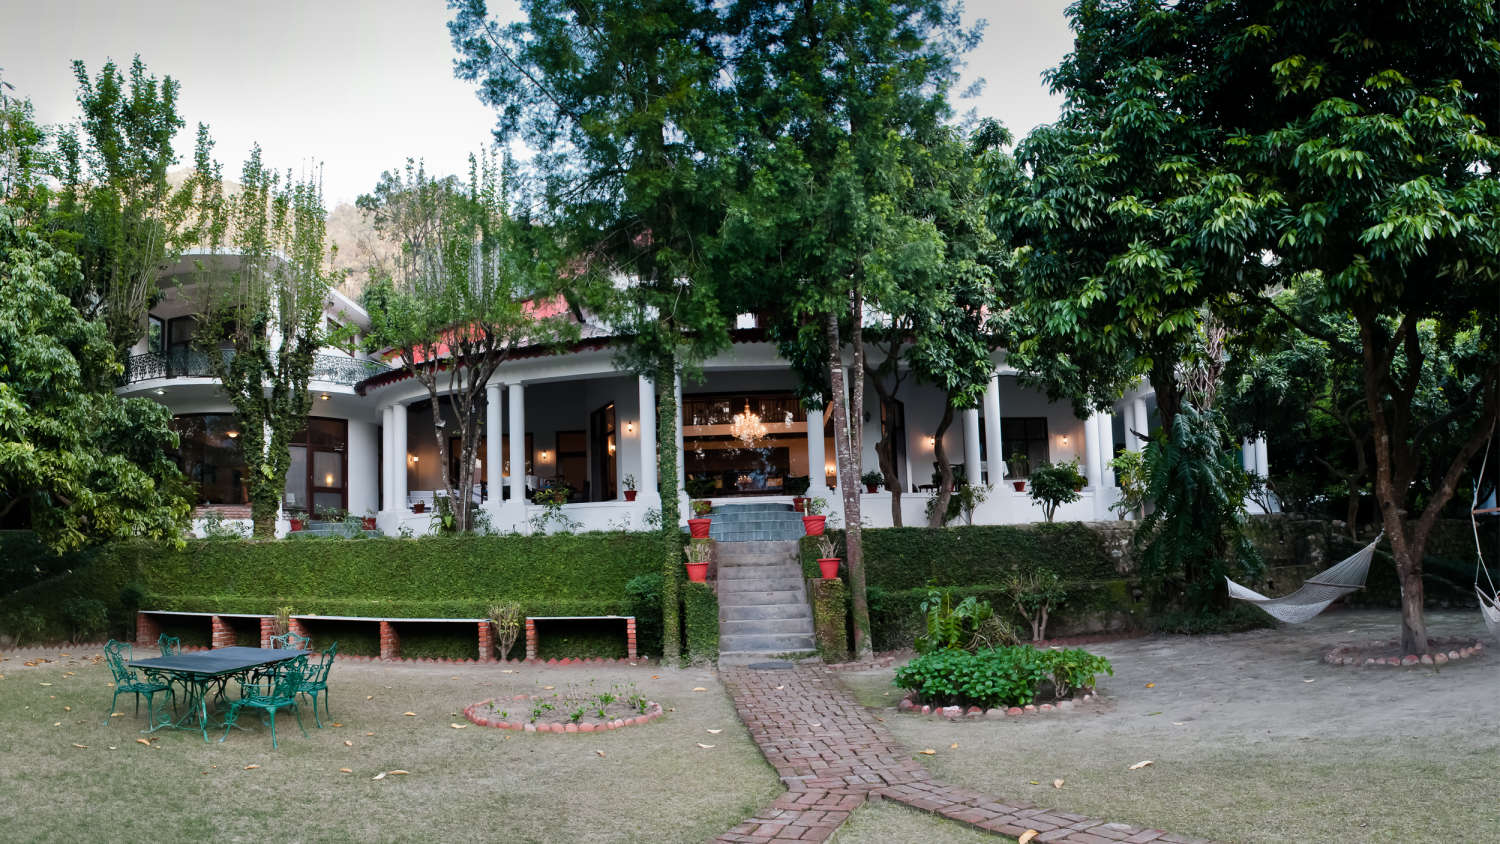 The Glasshouse on The Ganges Hotels above Rishikesh